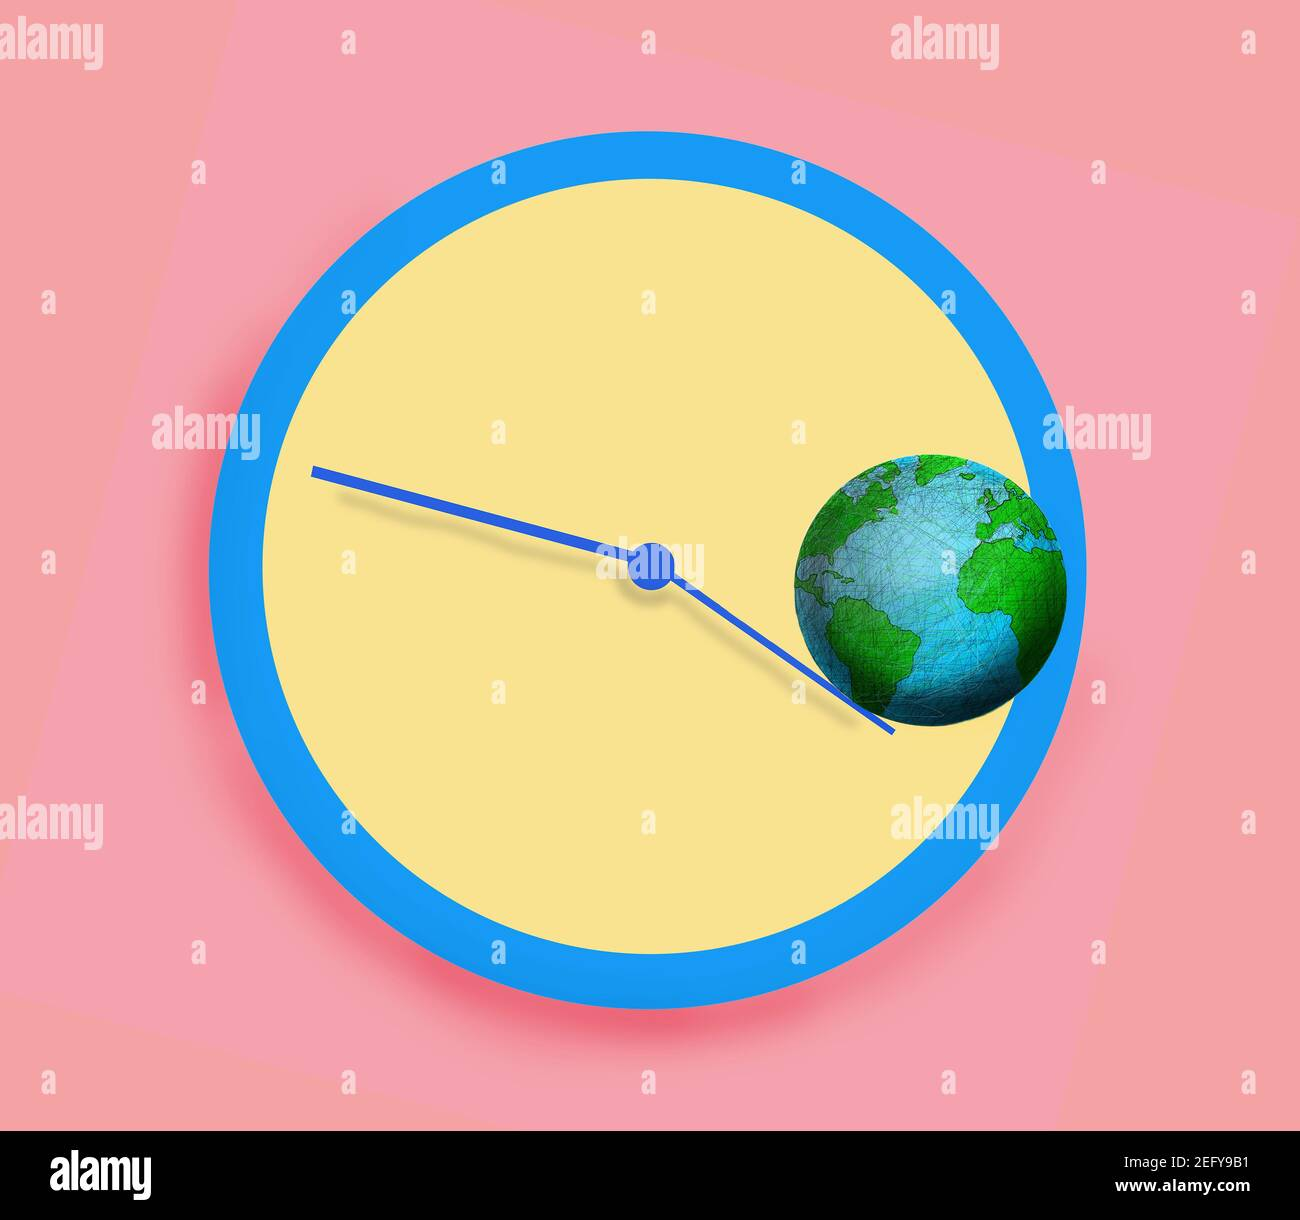 planet earth rolling of the hands of a clock Stock Photo